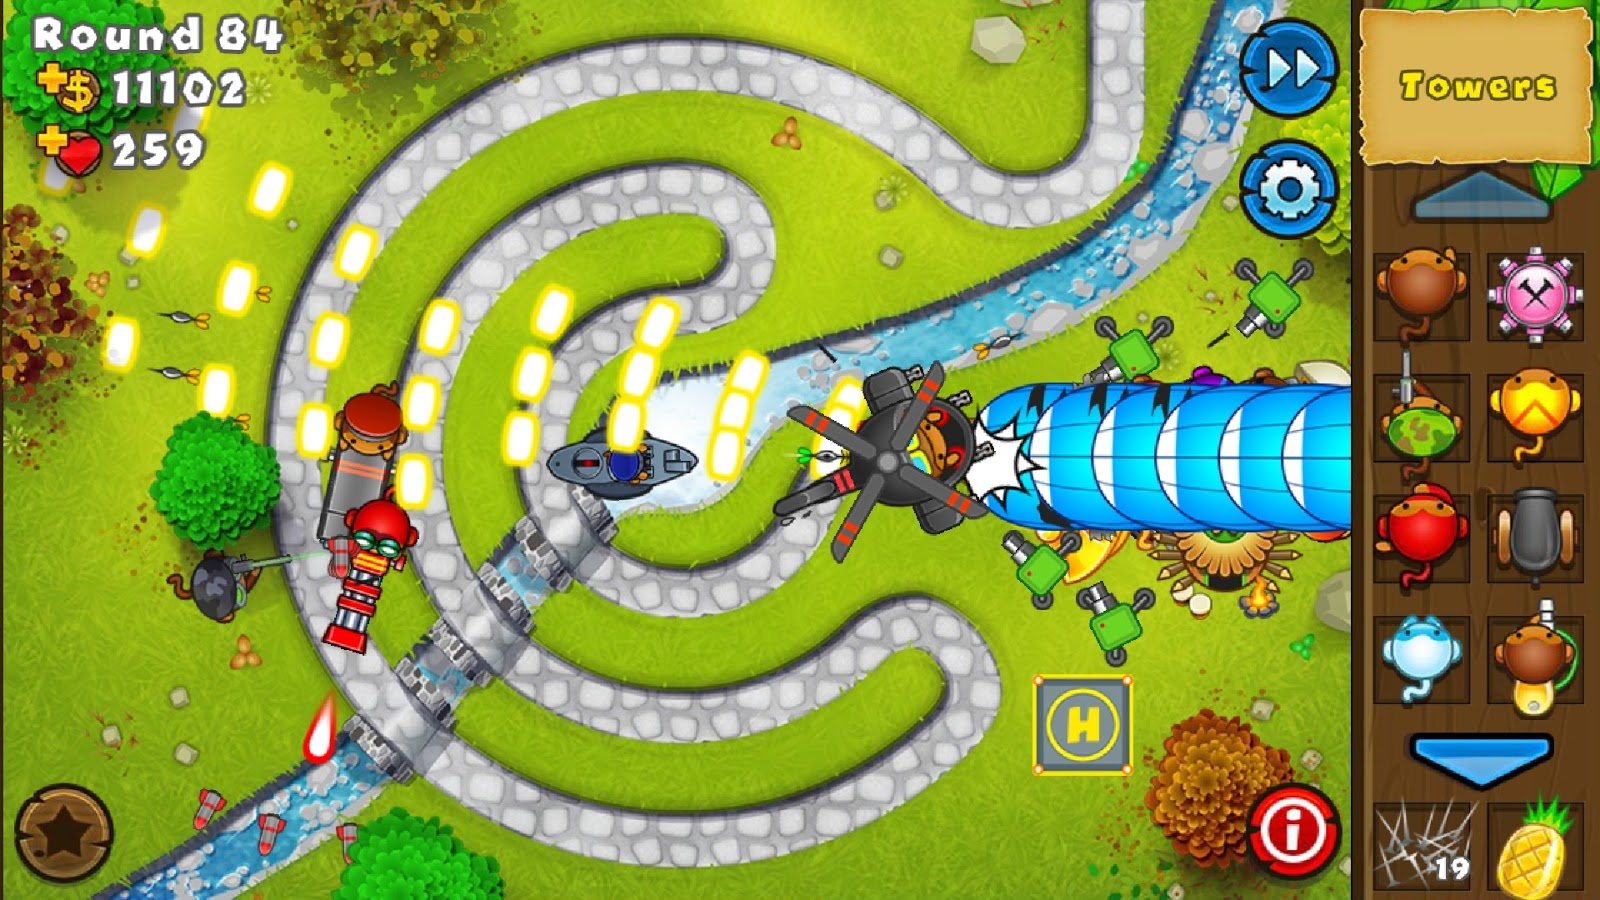 www.hackedonlinegames.com › upcoming › tower defense